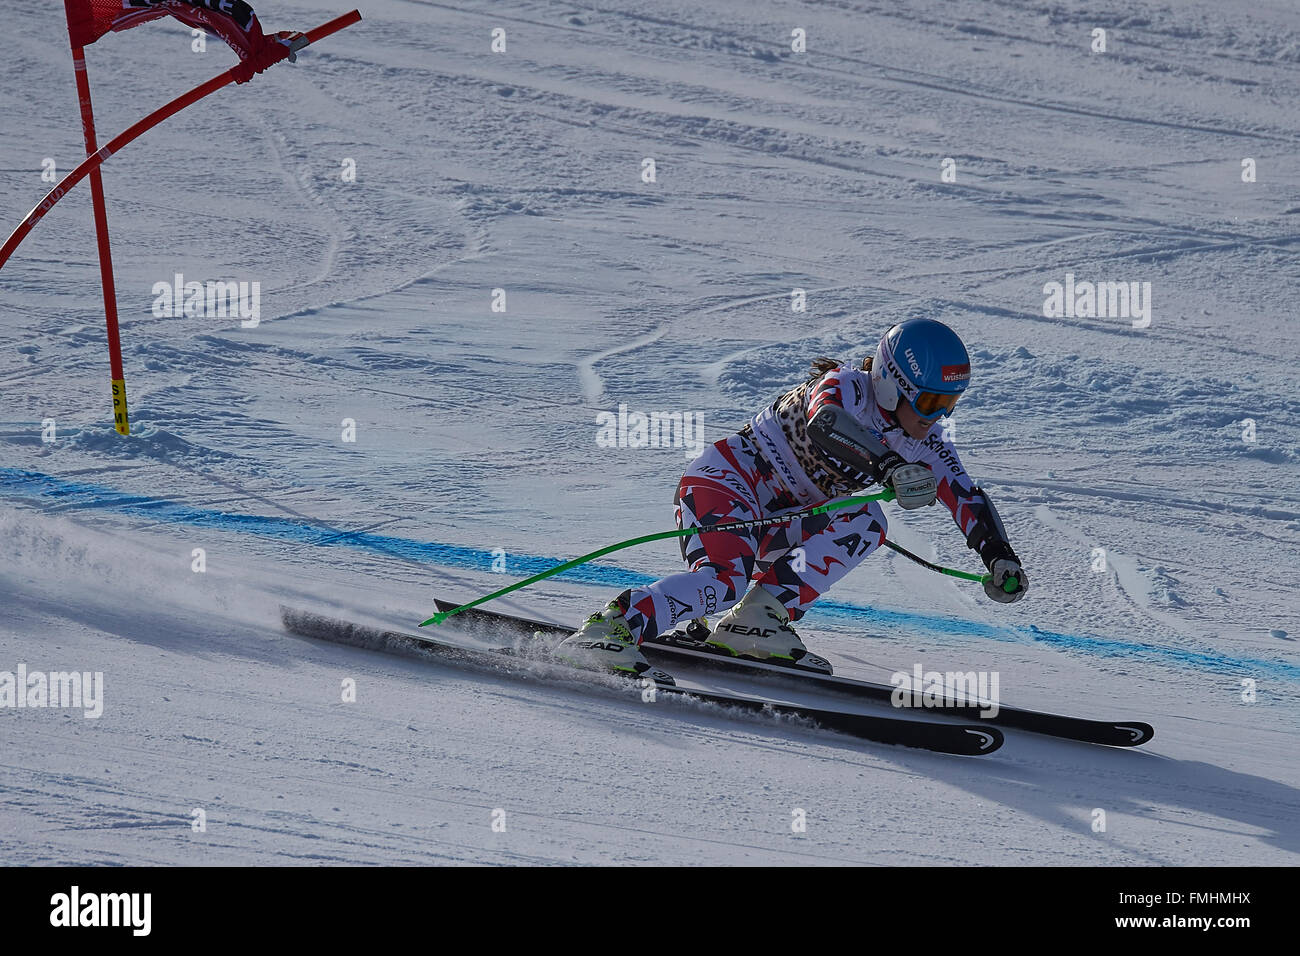 Lenzerheide, Switzerland. 12th March, 2016. Elisabeth Goergl (AUT) during her run in the Ladies' Super G at the - Stock Image